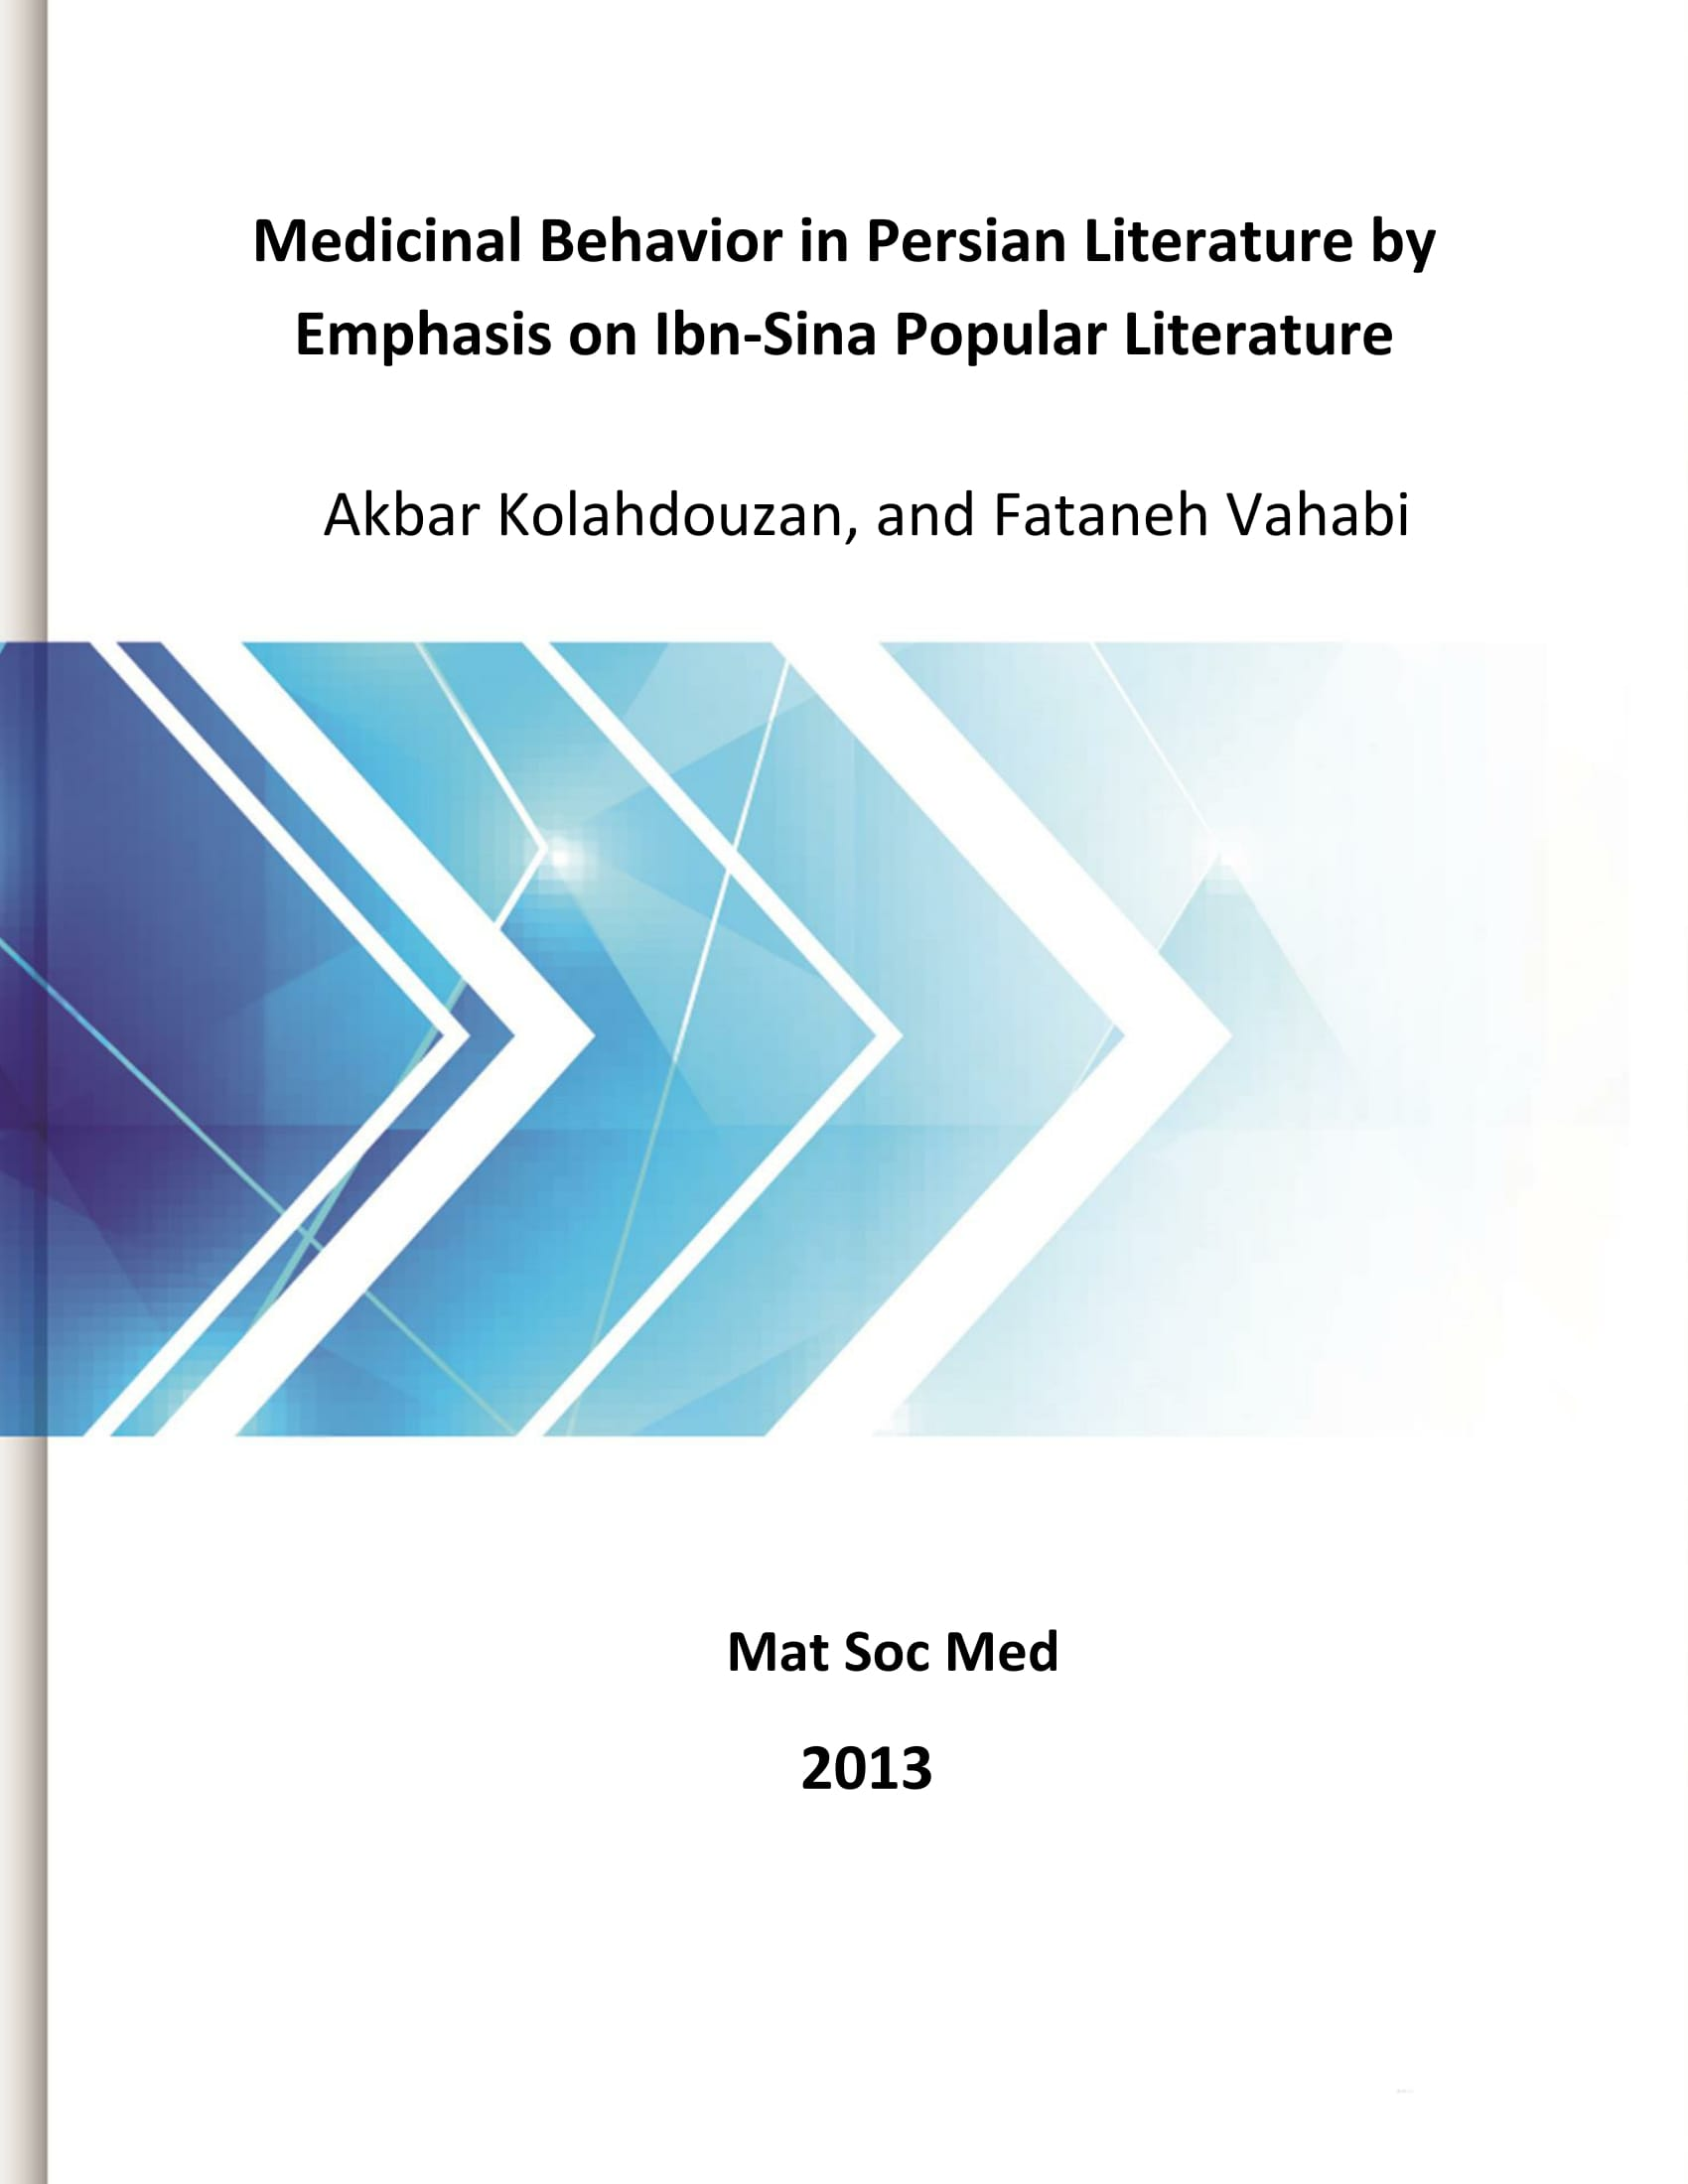 Medicinal Behavior in Persian Literature by Emphasis on Ibn-Sina Popular Literature